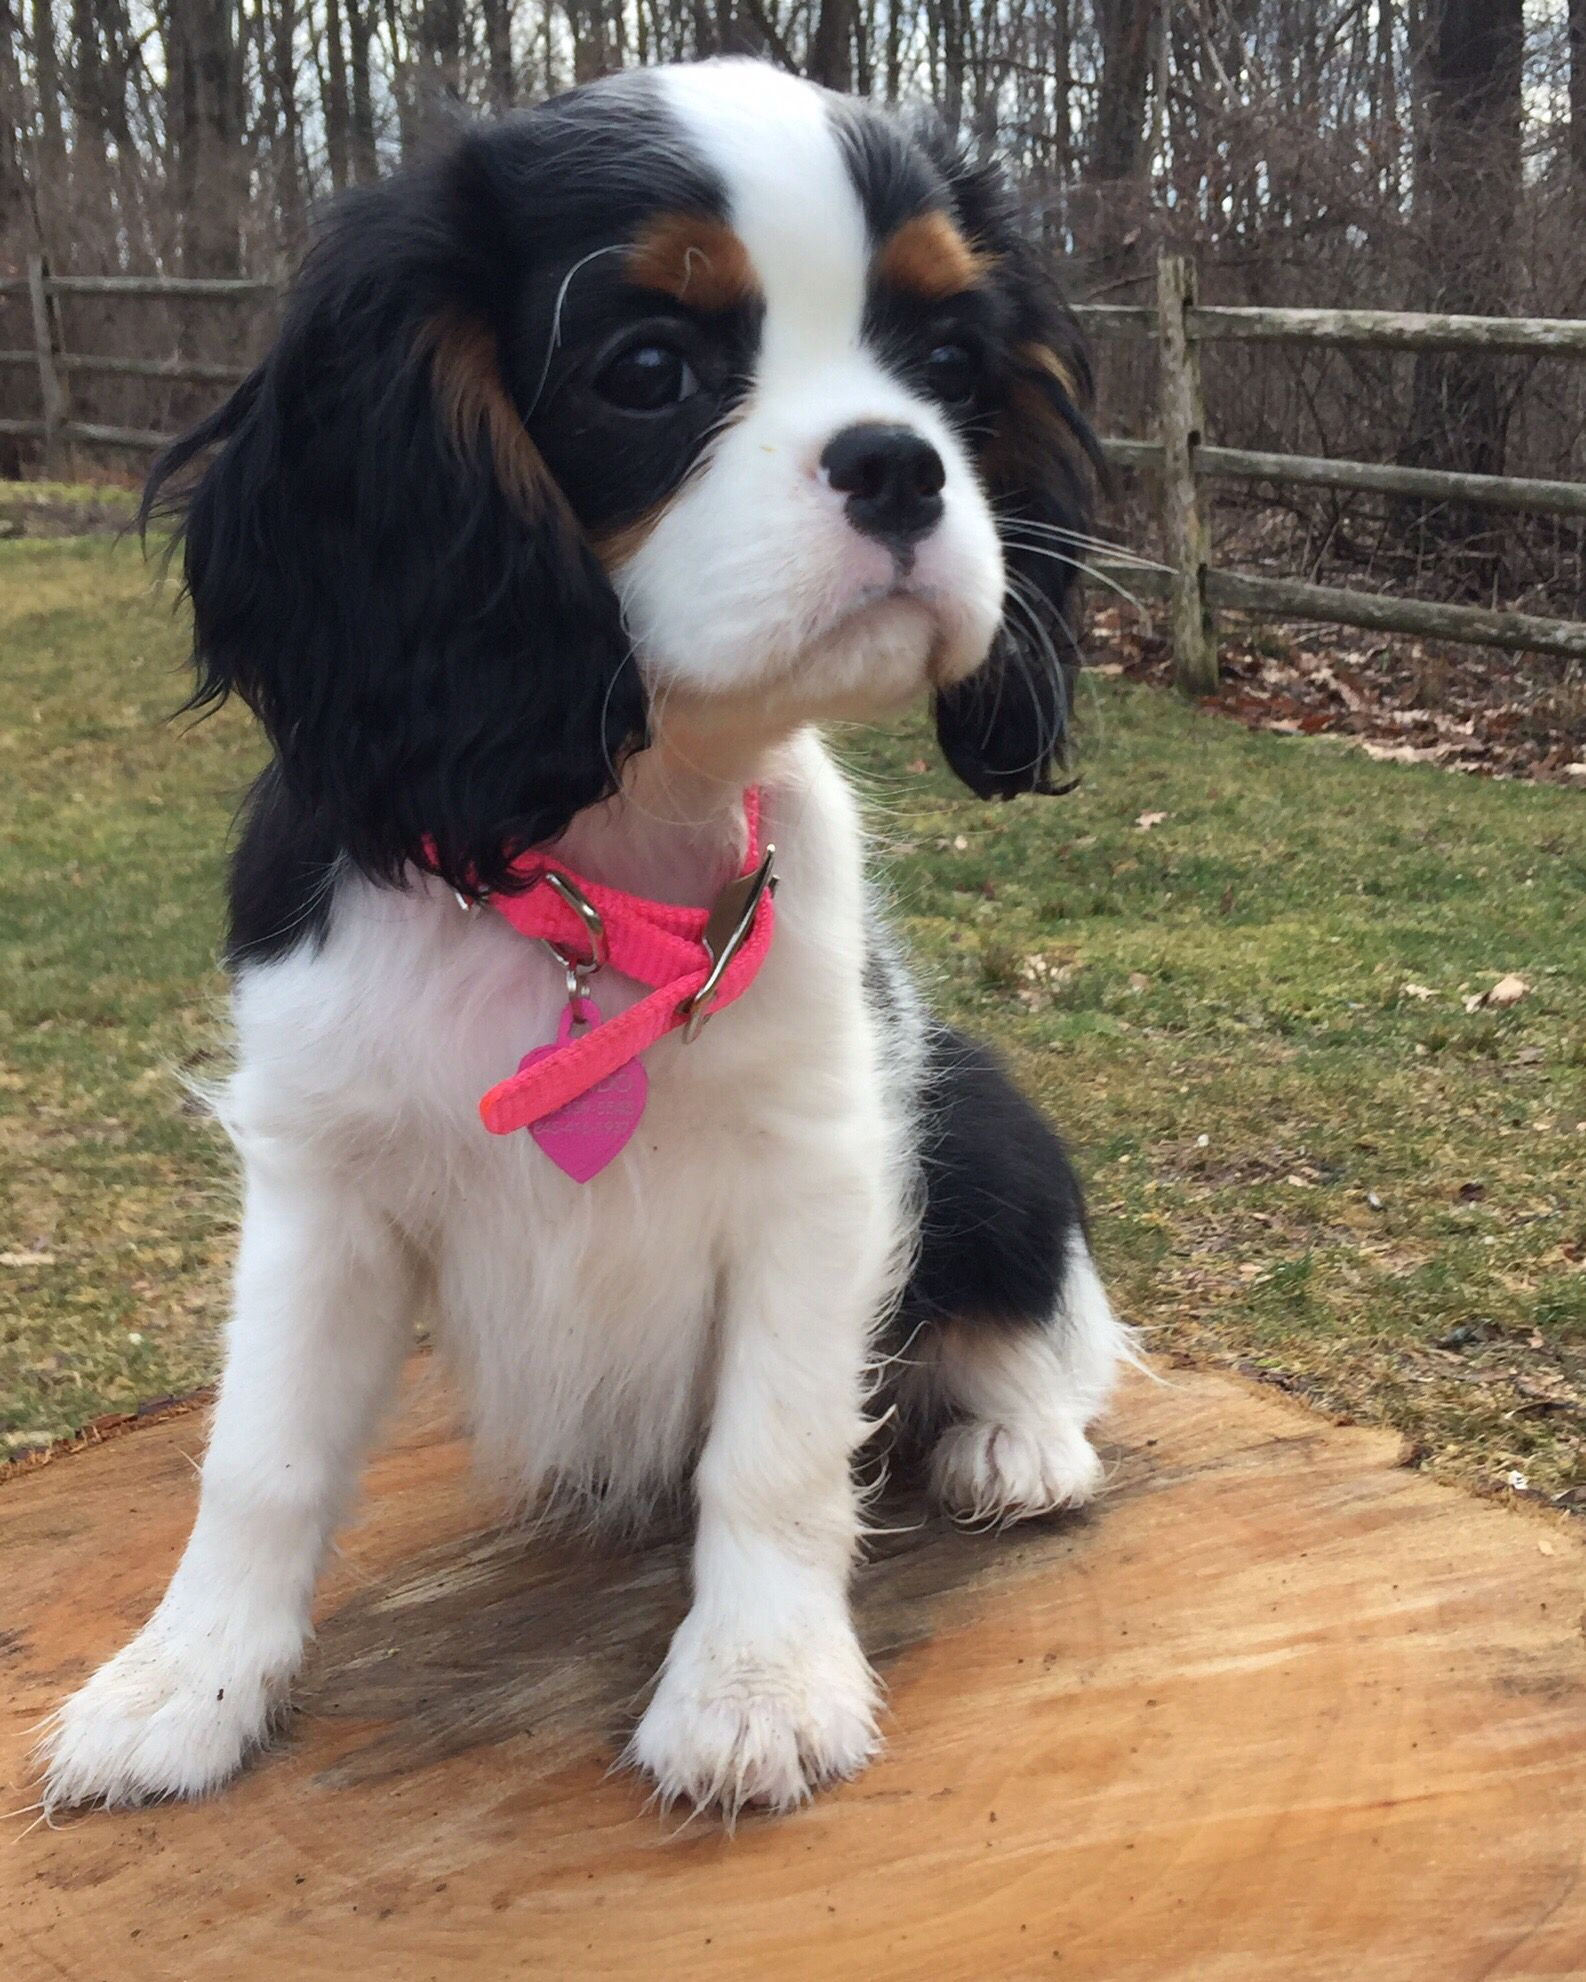 This Is Our 12 Week Old Puppy Her Name Is Taylor And She Is A Cavaler King Charles Spaniel King Charles Spaniel King Charles Cavalier Spaniel Puppy